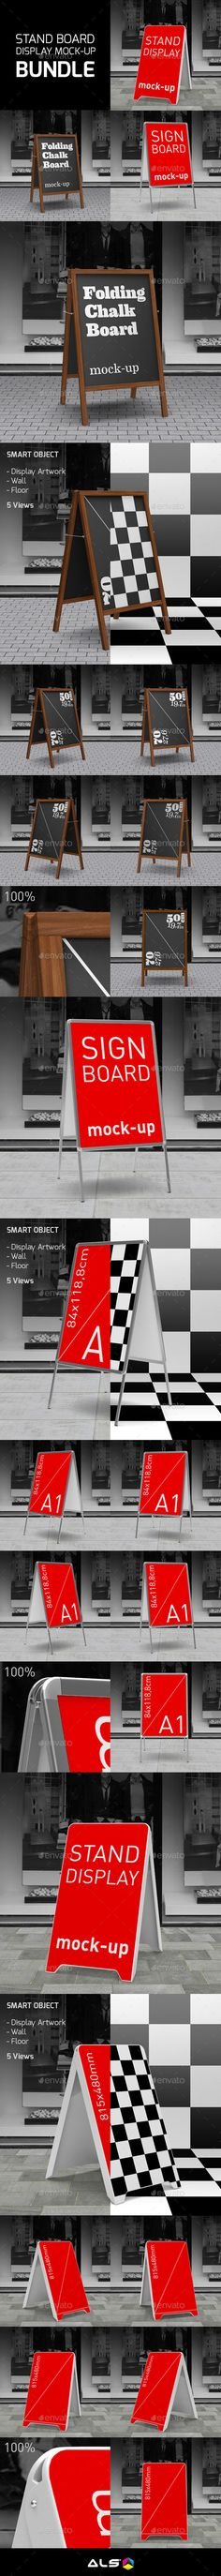 Sign Boards Display Mock-Up - Posters Print